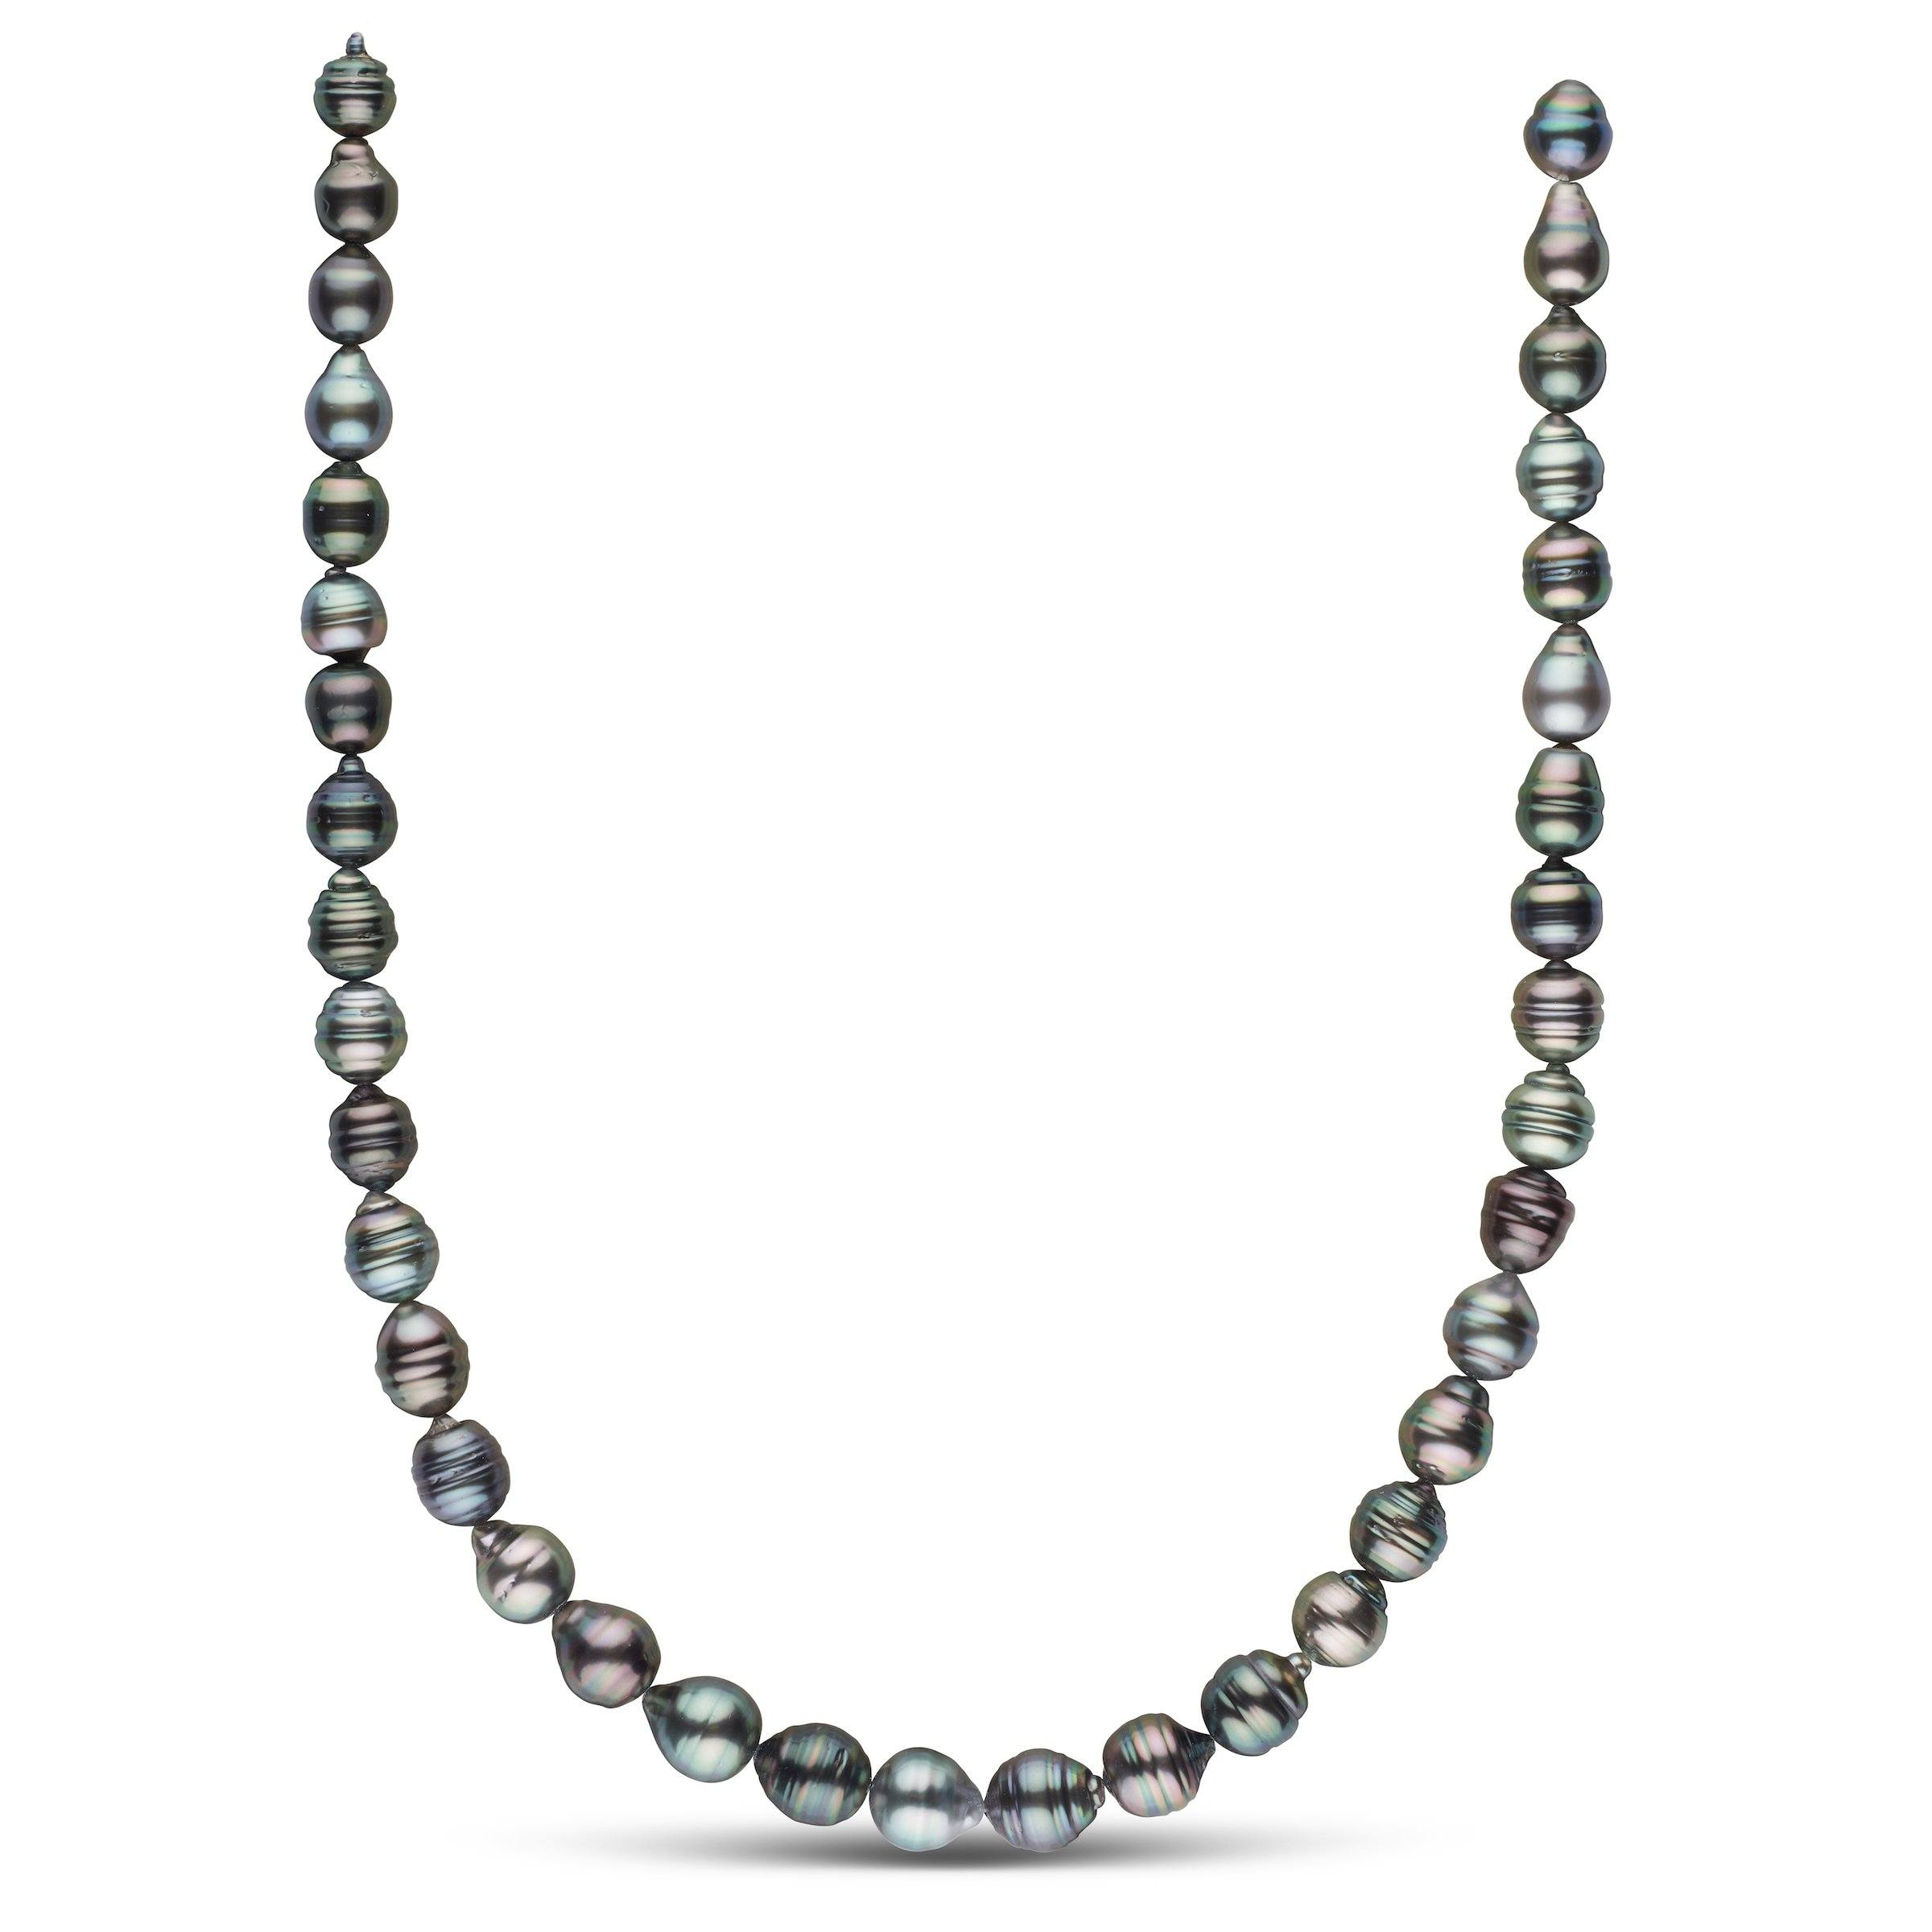 8.3-10.4 mm AA+ Tahitian Baroque Pearl Necklace